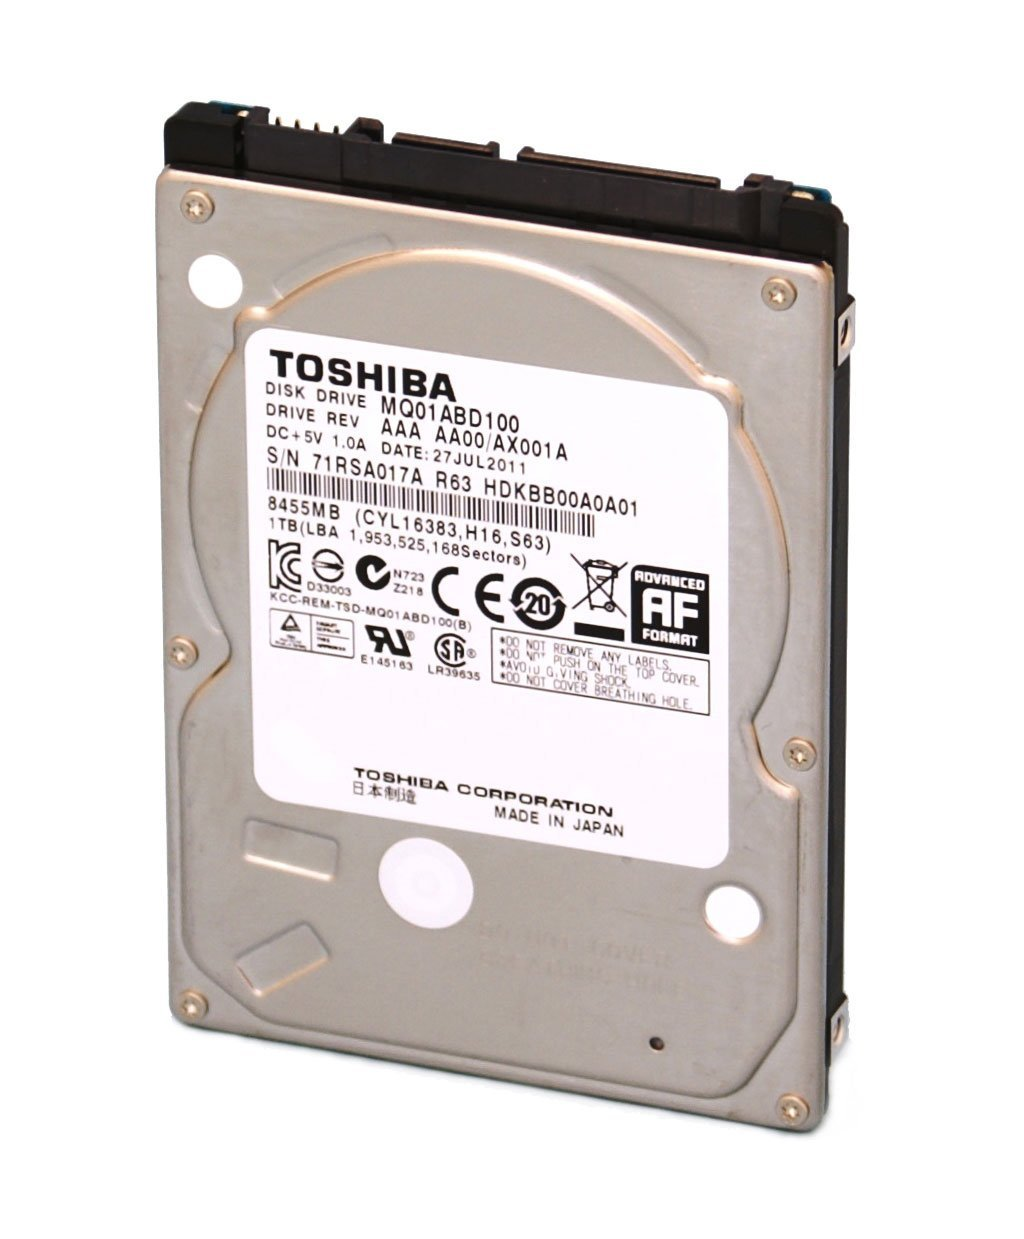 Disposing of your HDD? Never forget the risk of data recovery from damaged drives